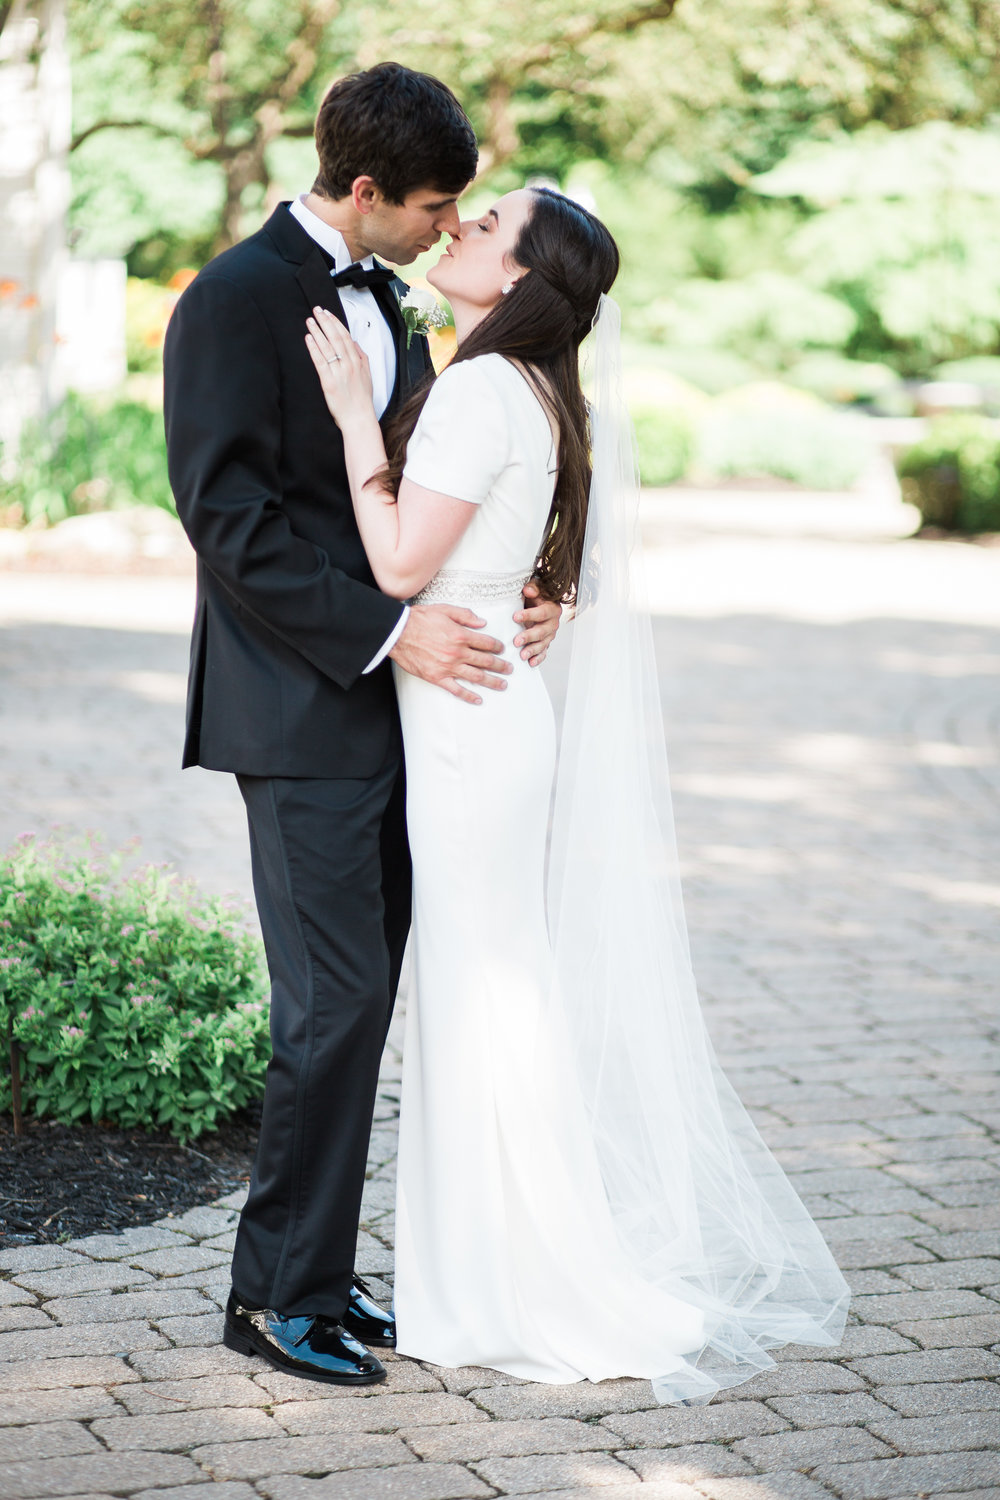 Katelyn_Wollet_Photography_Ann_Arbor_Wedding-48.jpg